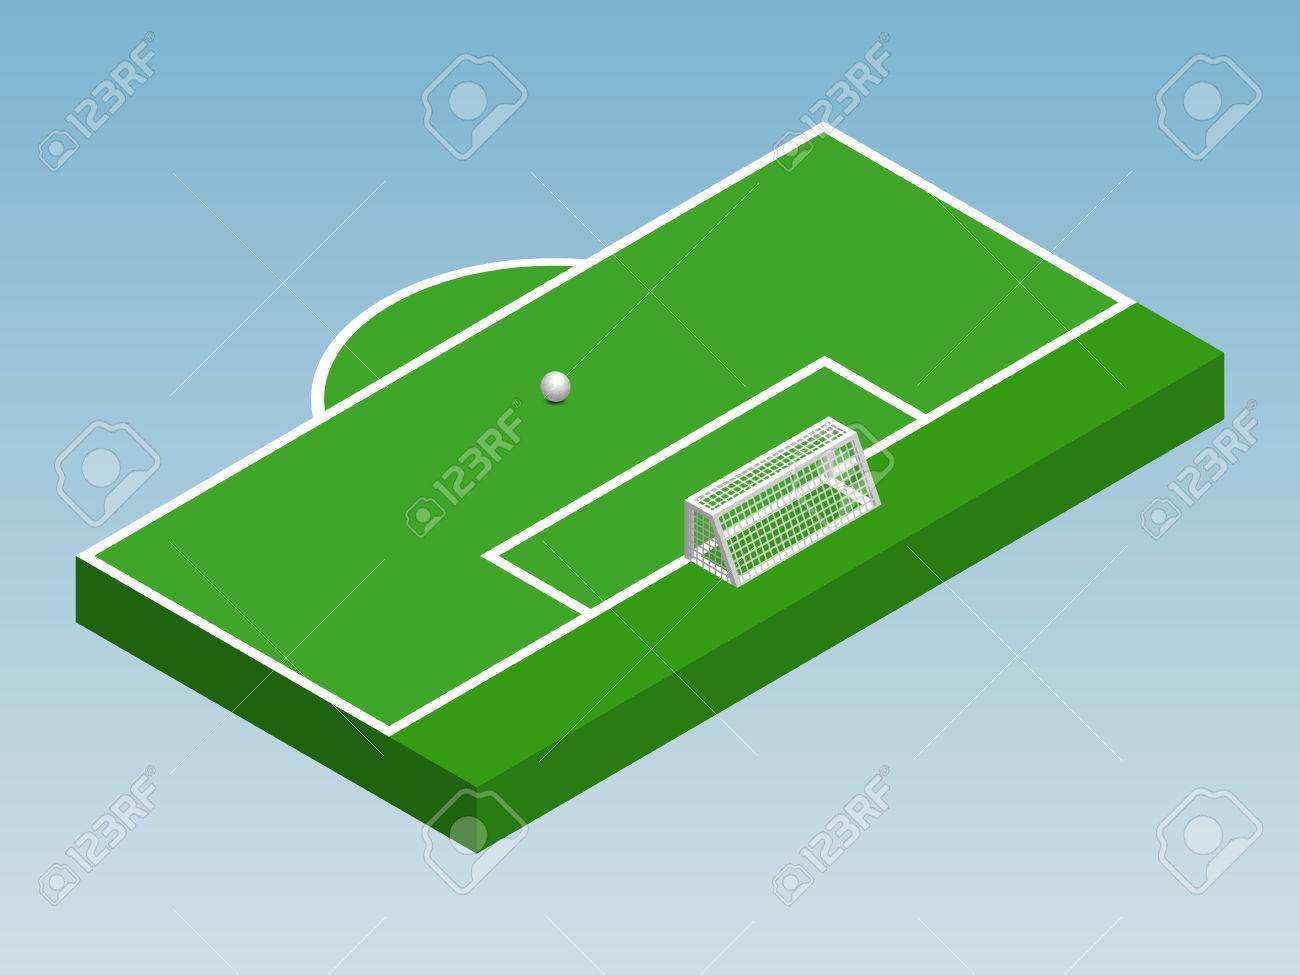 Editable soccer field diagram block and schematic diagrams 3d isometric illustration of football goal part of football rh 123rf com soccer field diagram for coaching soccer field outline maxwellsz